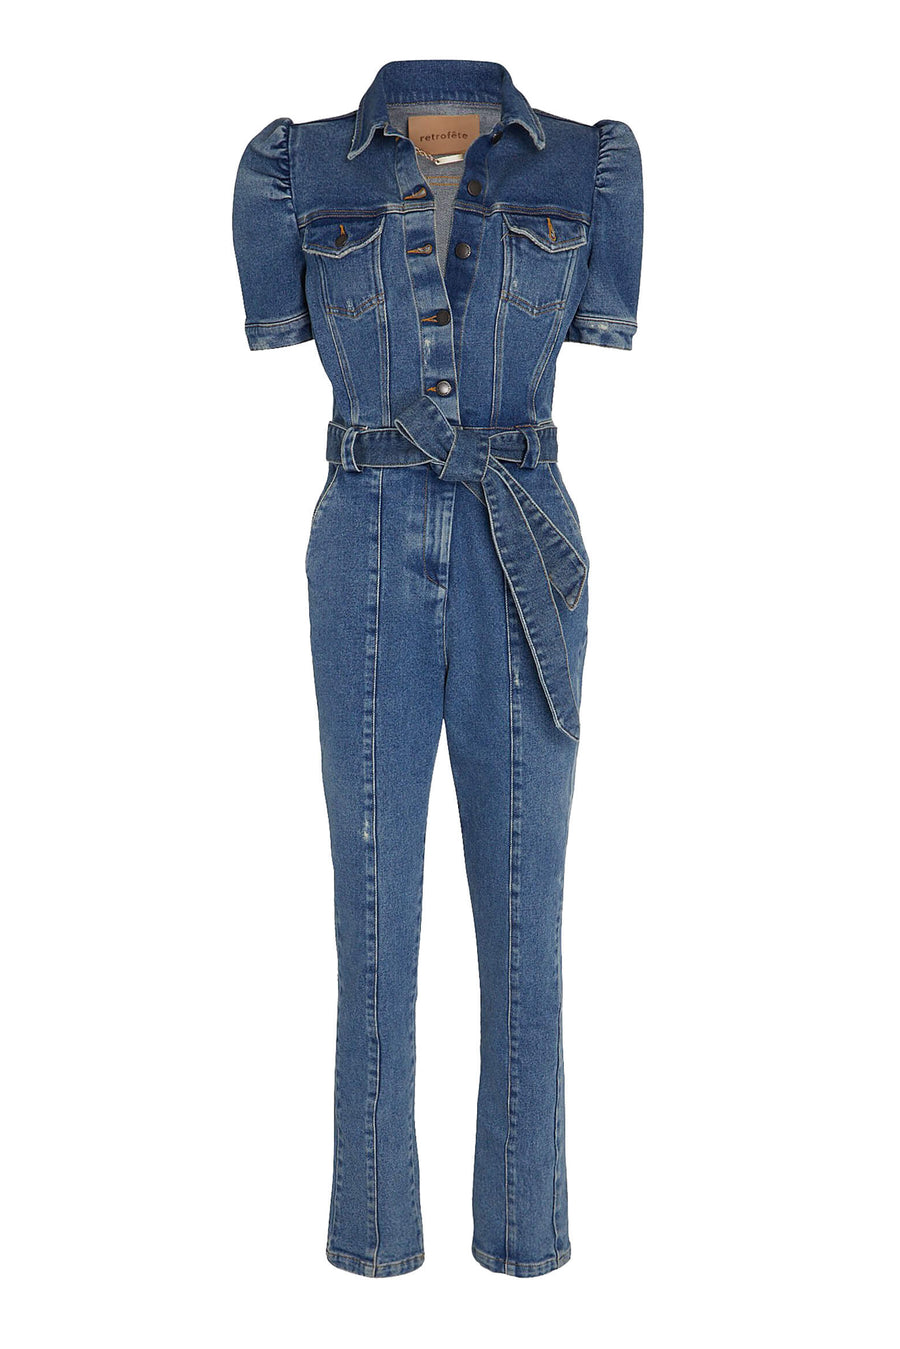 Retrofit Tori Denim Jumpsuit in Light Denim from The New Trend